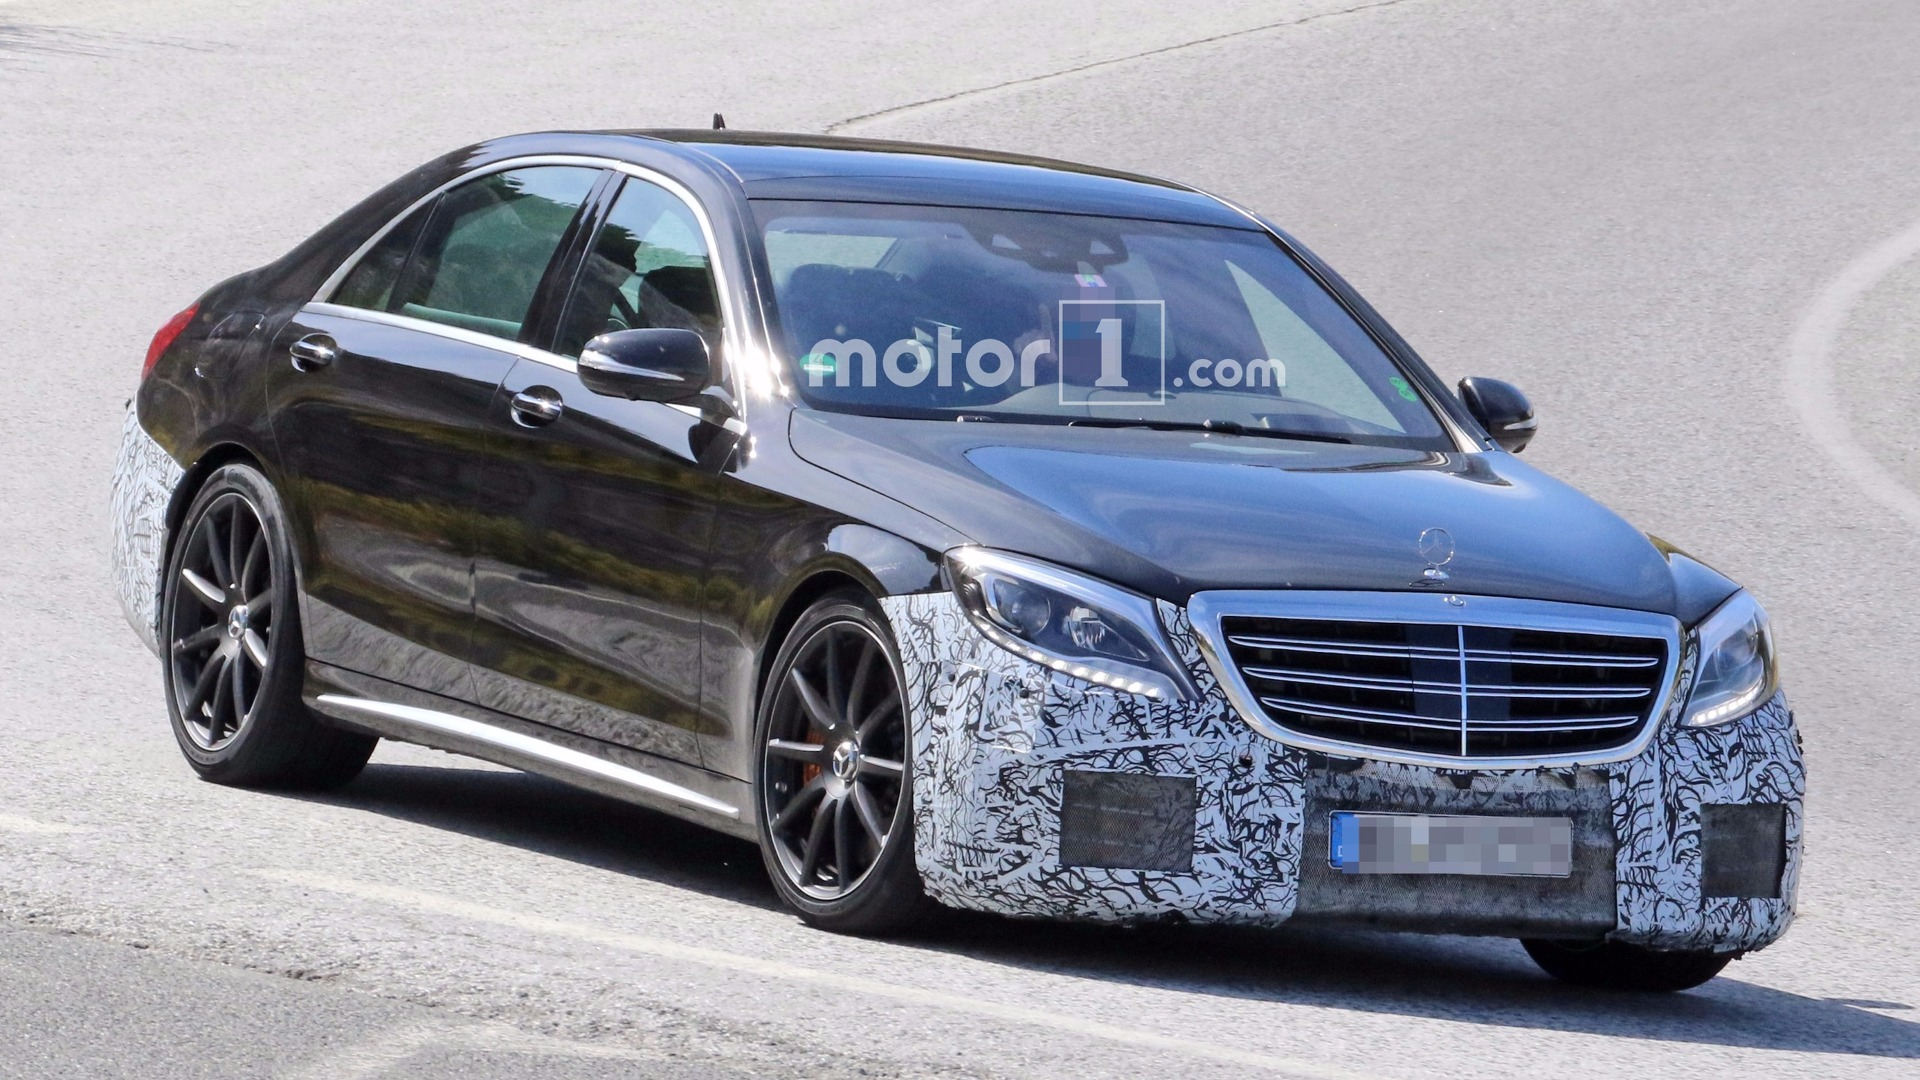 2018 Mercedes AMG S63 and S Class spied testing